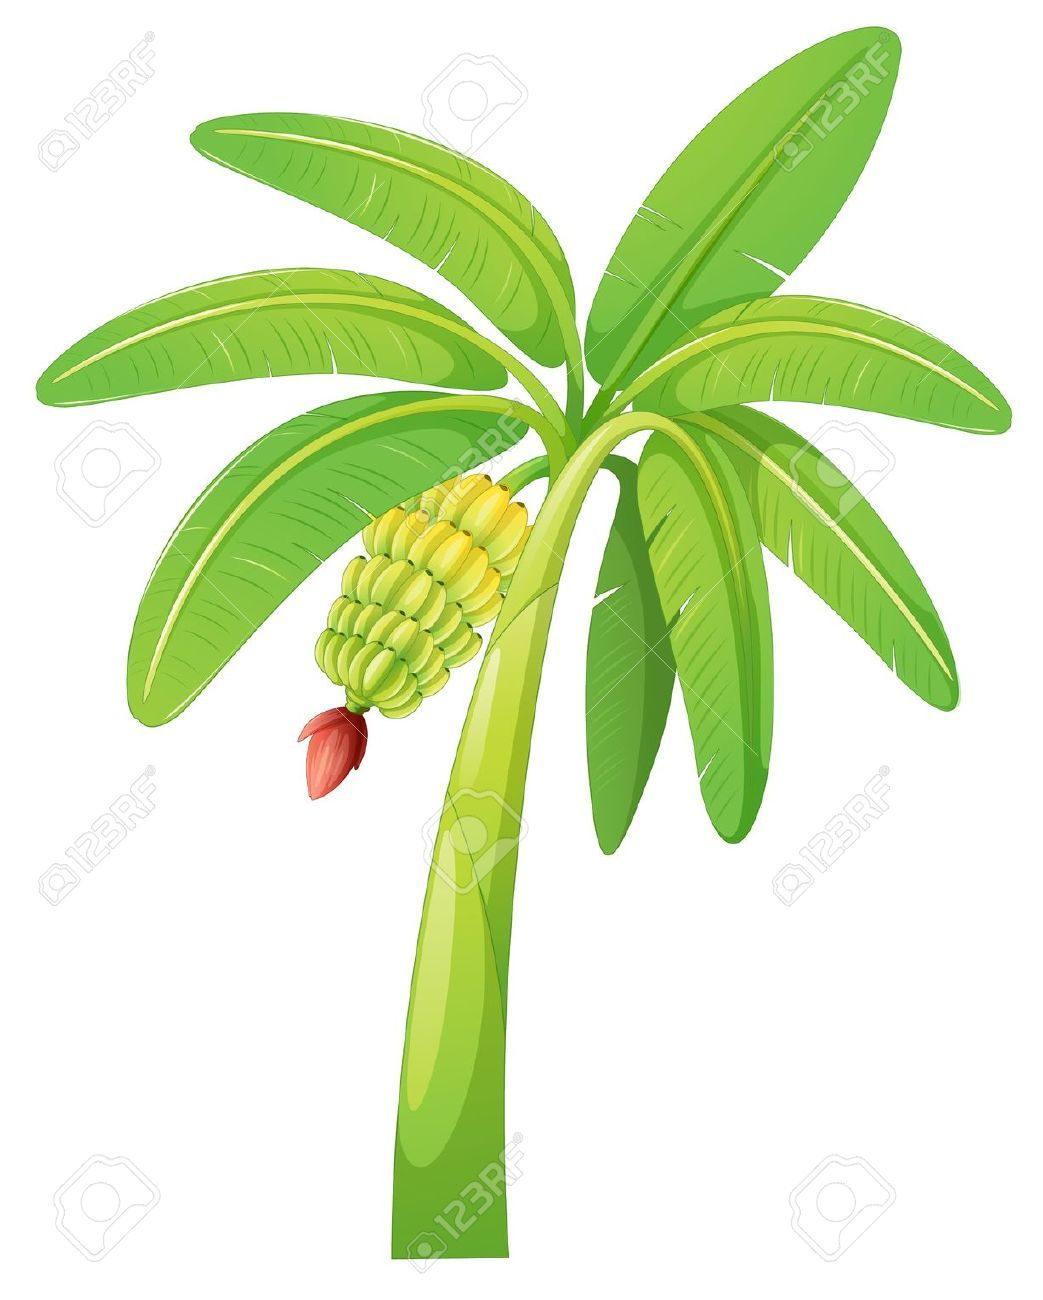 Banana tree leaves clipart graphic transparent download of banana tree on a white | nuntawat55 | Palm tree clip art, Leaf ... graphic transparent download